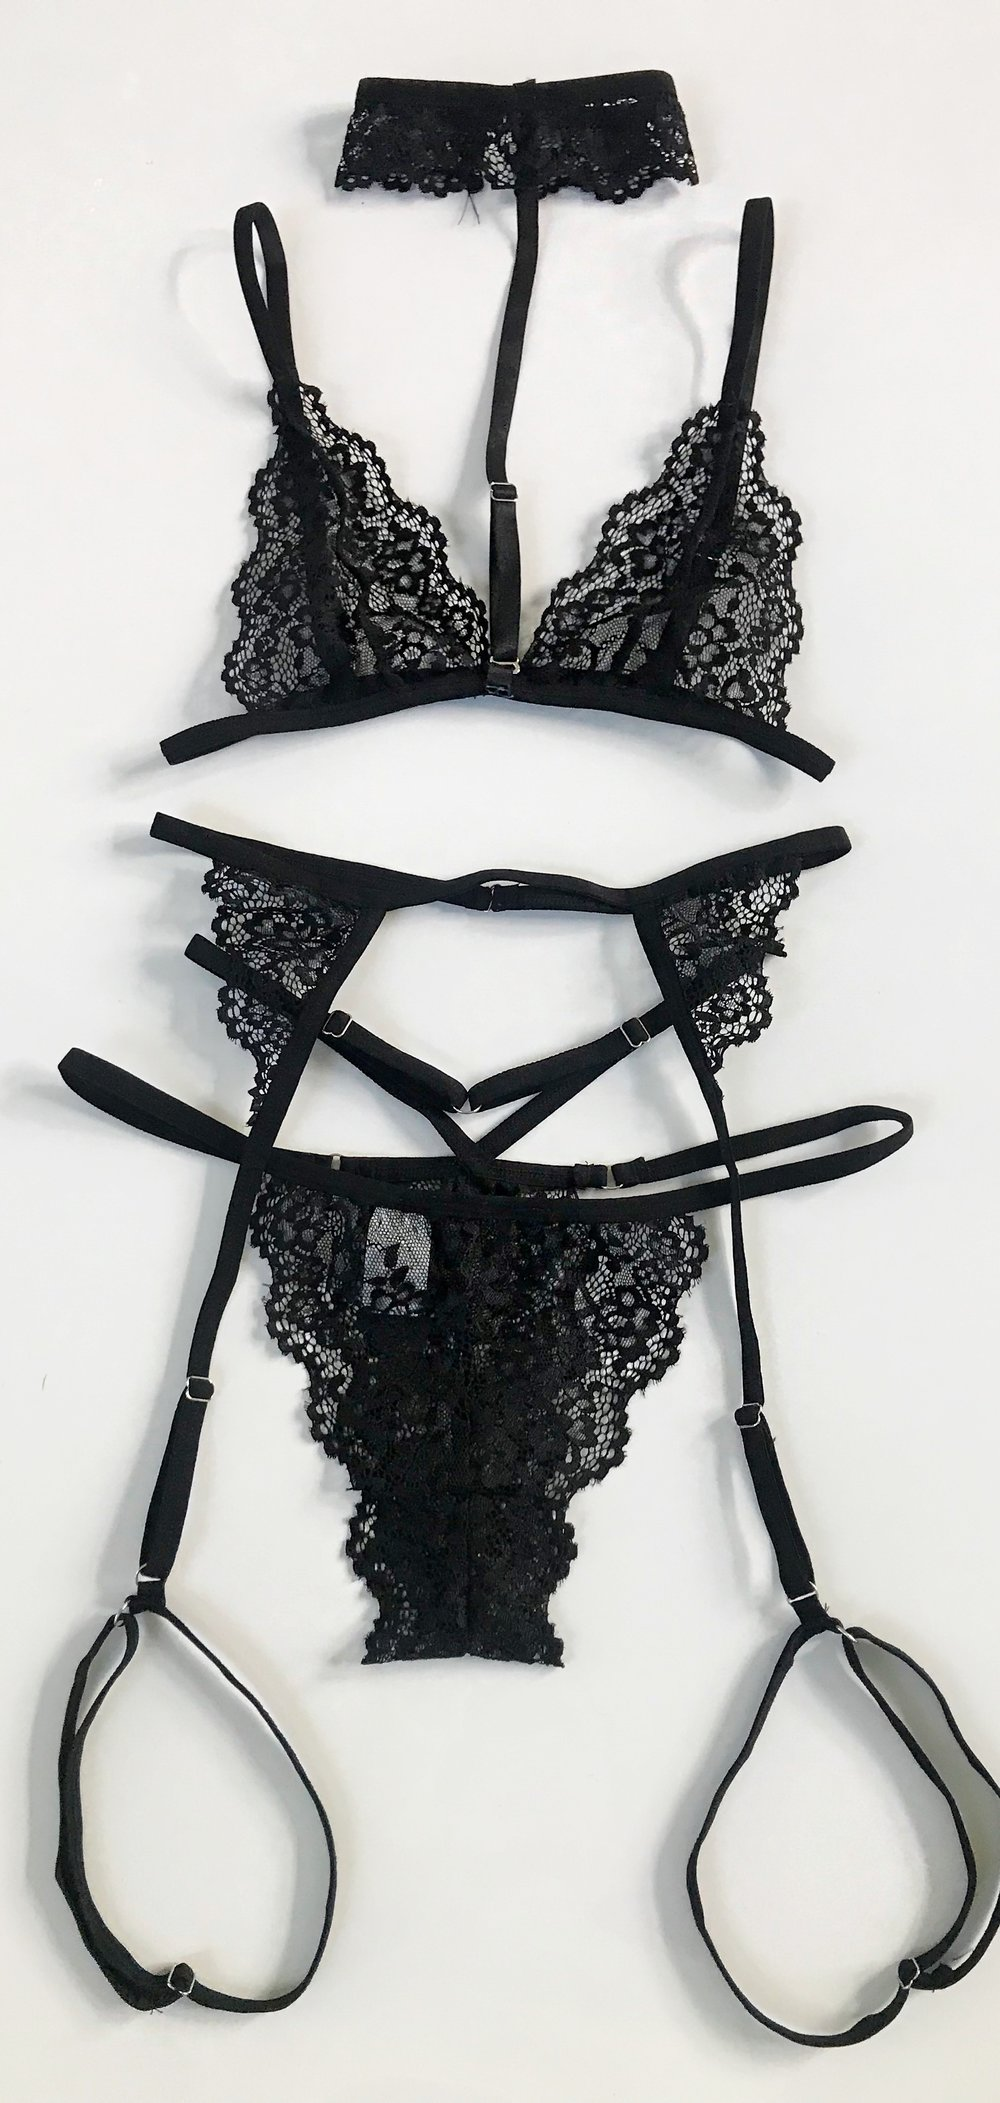 4 piece lingerie set - BLACKS, LPanty Style: ThongBra Type: Wireless$23